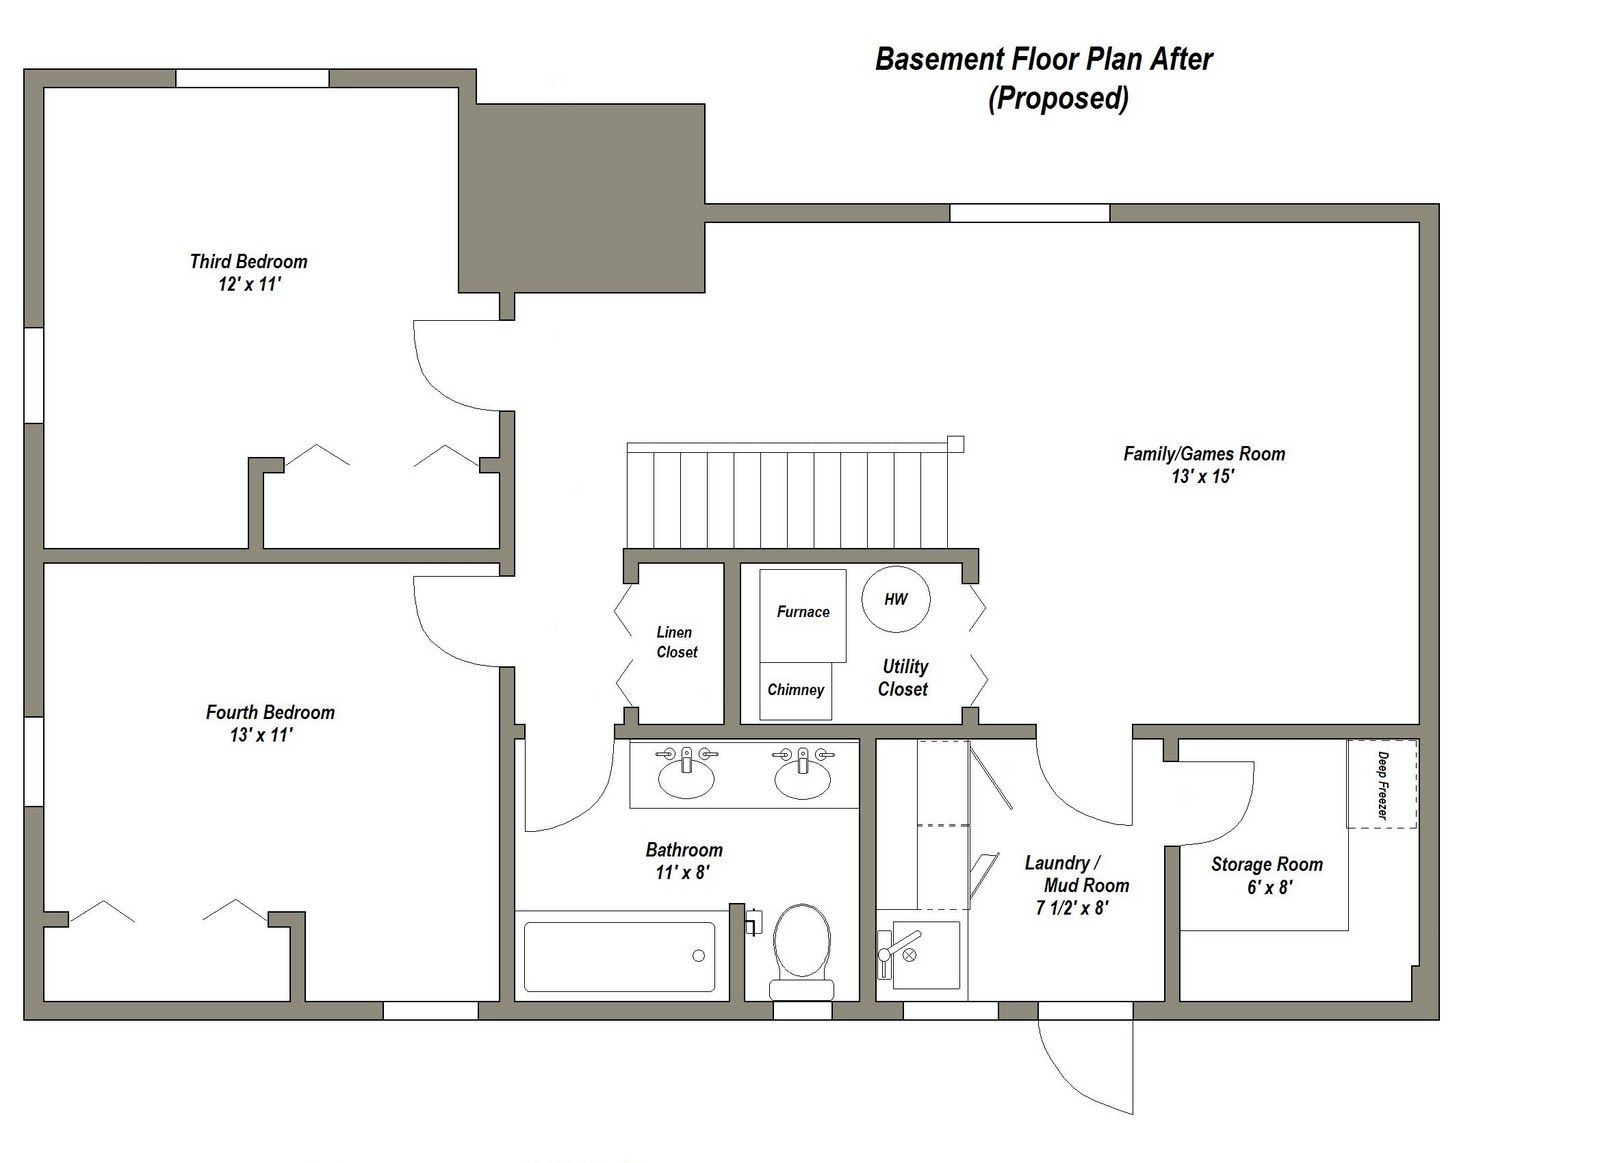 wonderful basement floor plan ideas cagedesigngroup. walkout